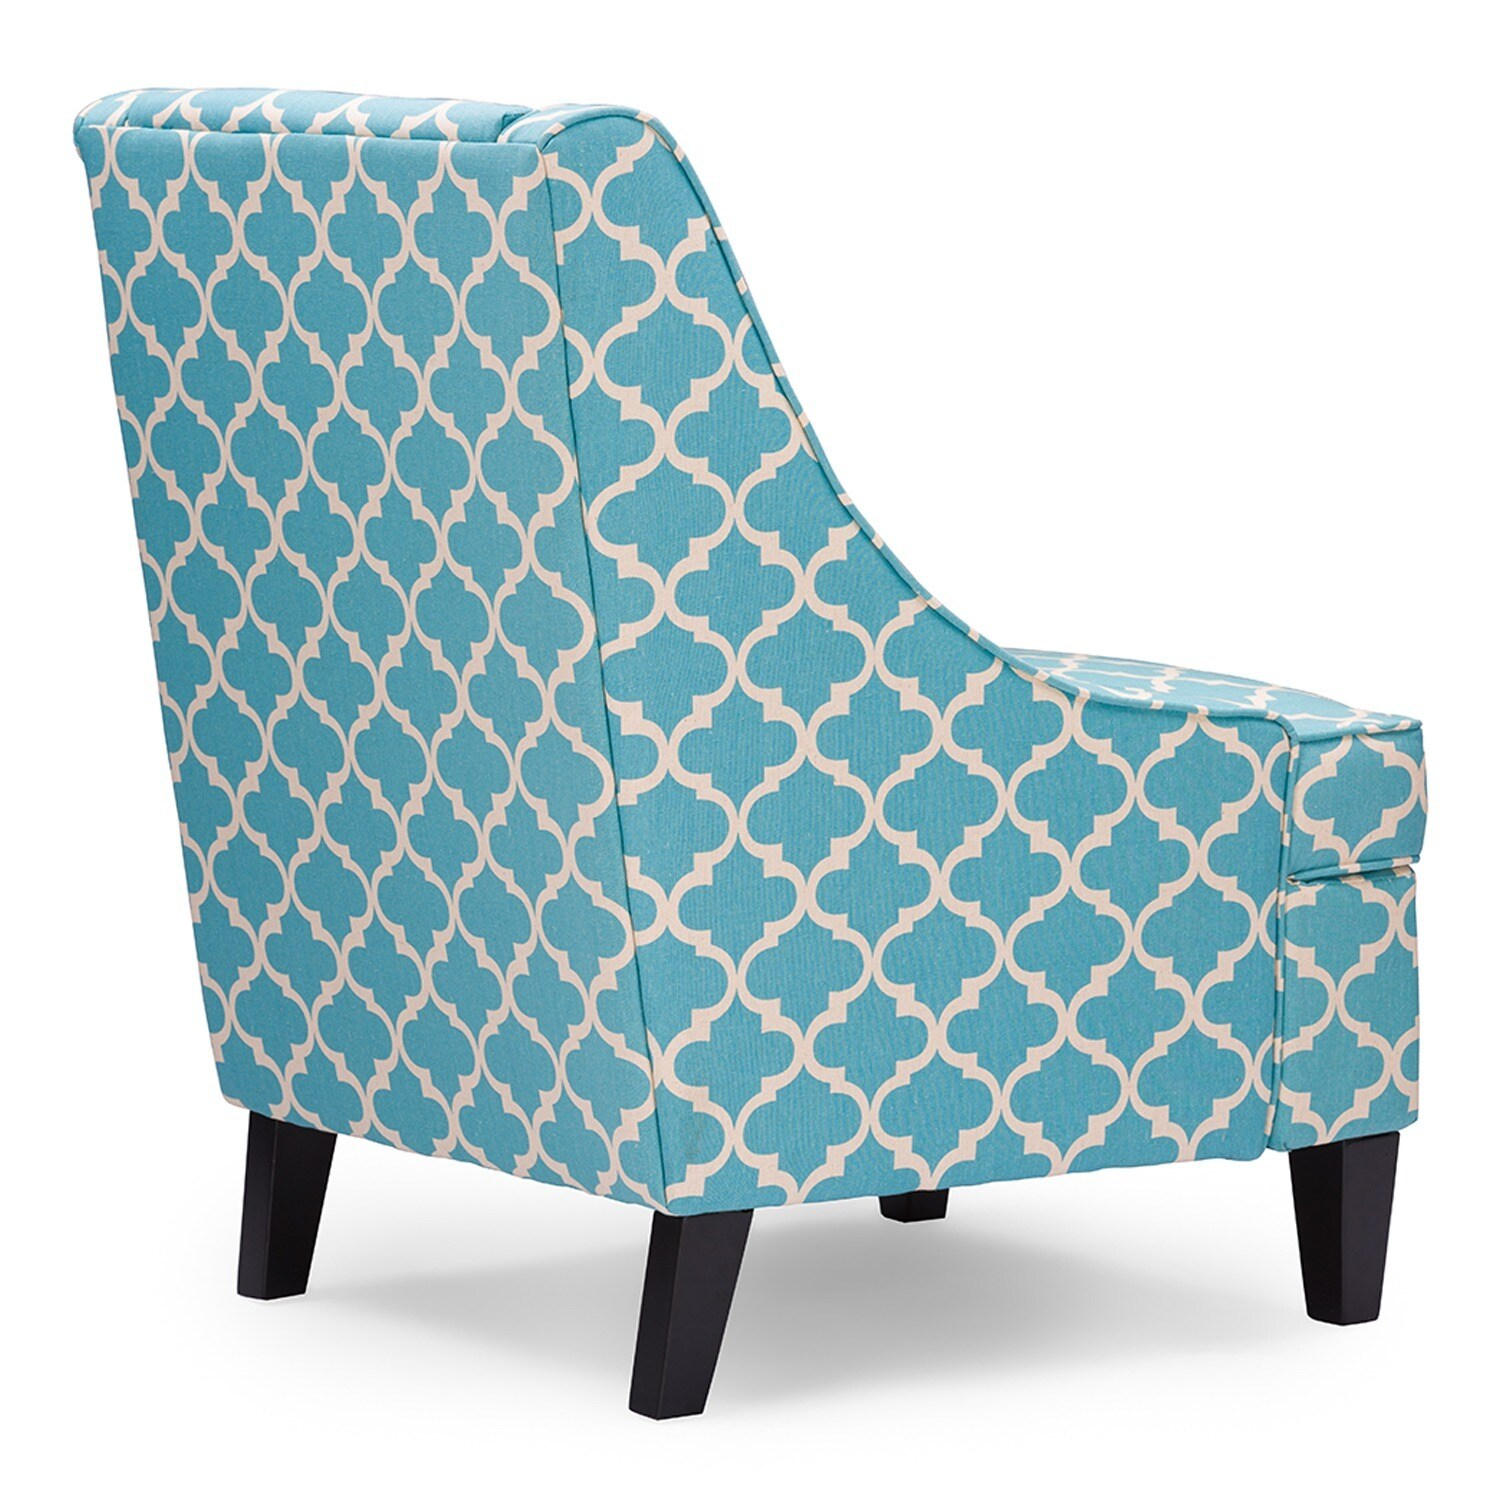 Blue Patterned Chair Asplin Contemporary Blue Patterned Fabric Upholstered Armchair